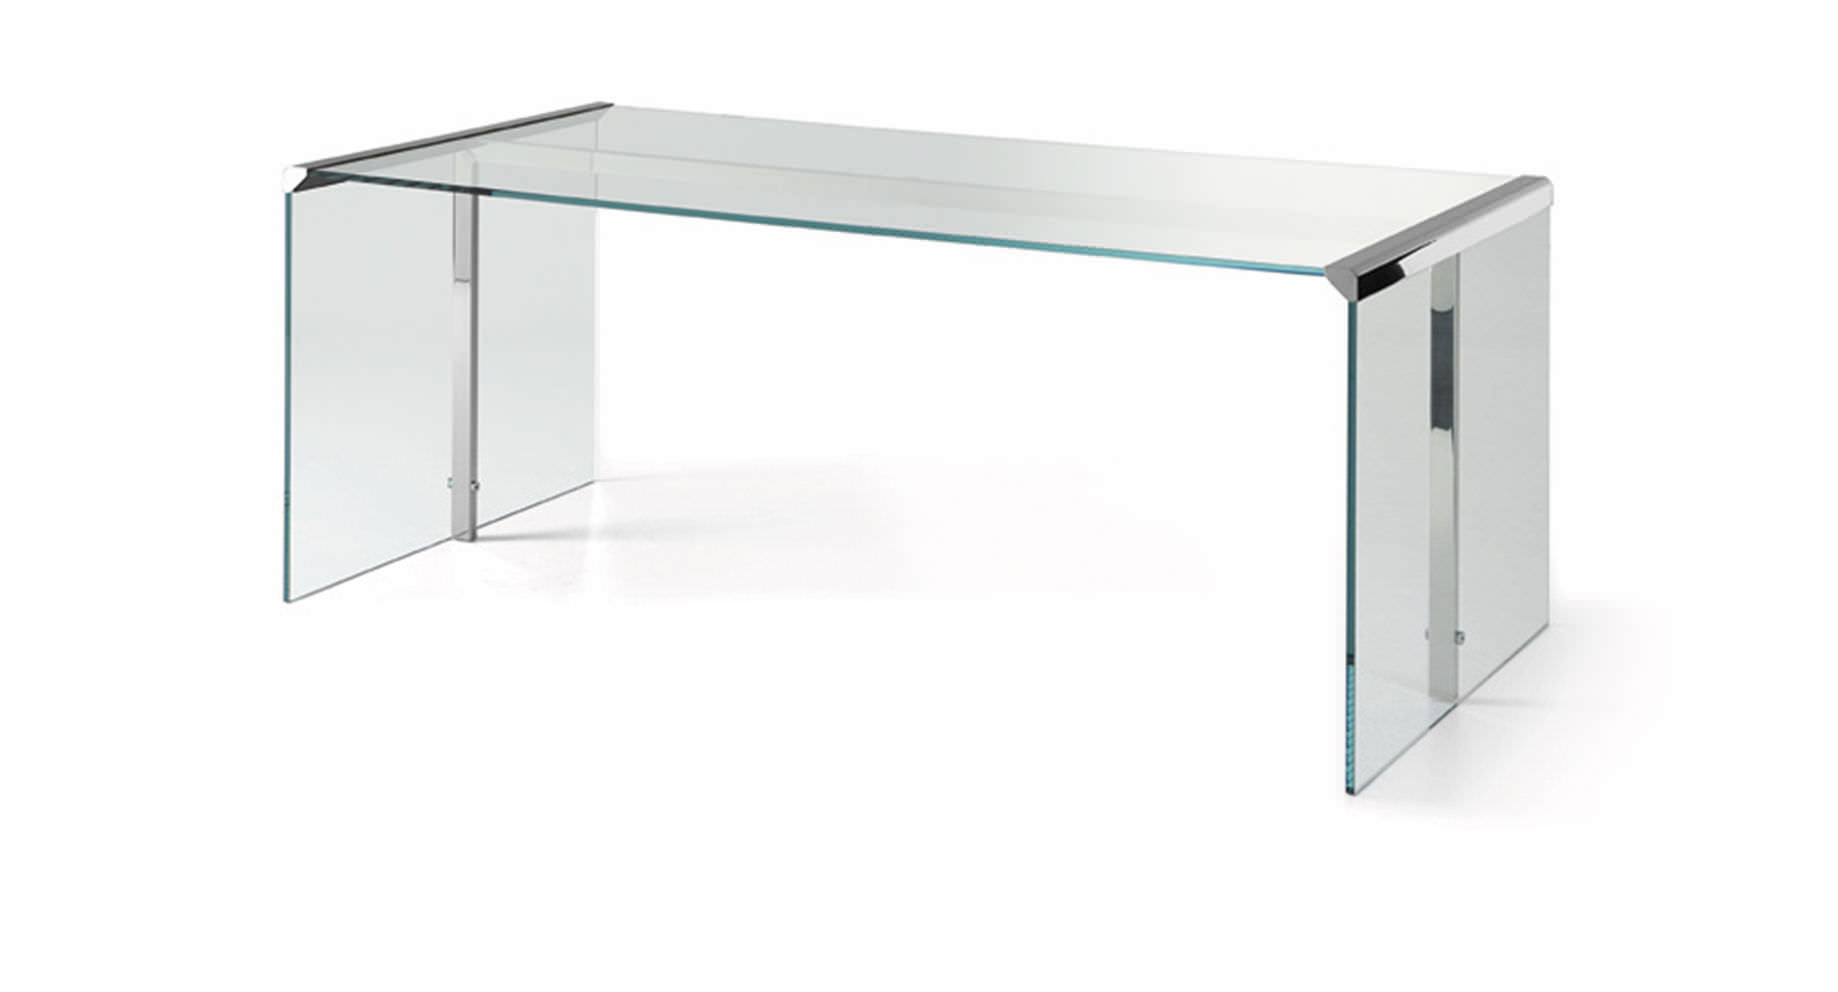 modern full glass desk. Multimedia Desk / Stainless Steel Glass Contemporary - PRESIDENT Modern Full K